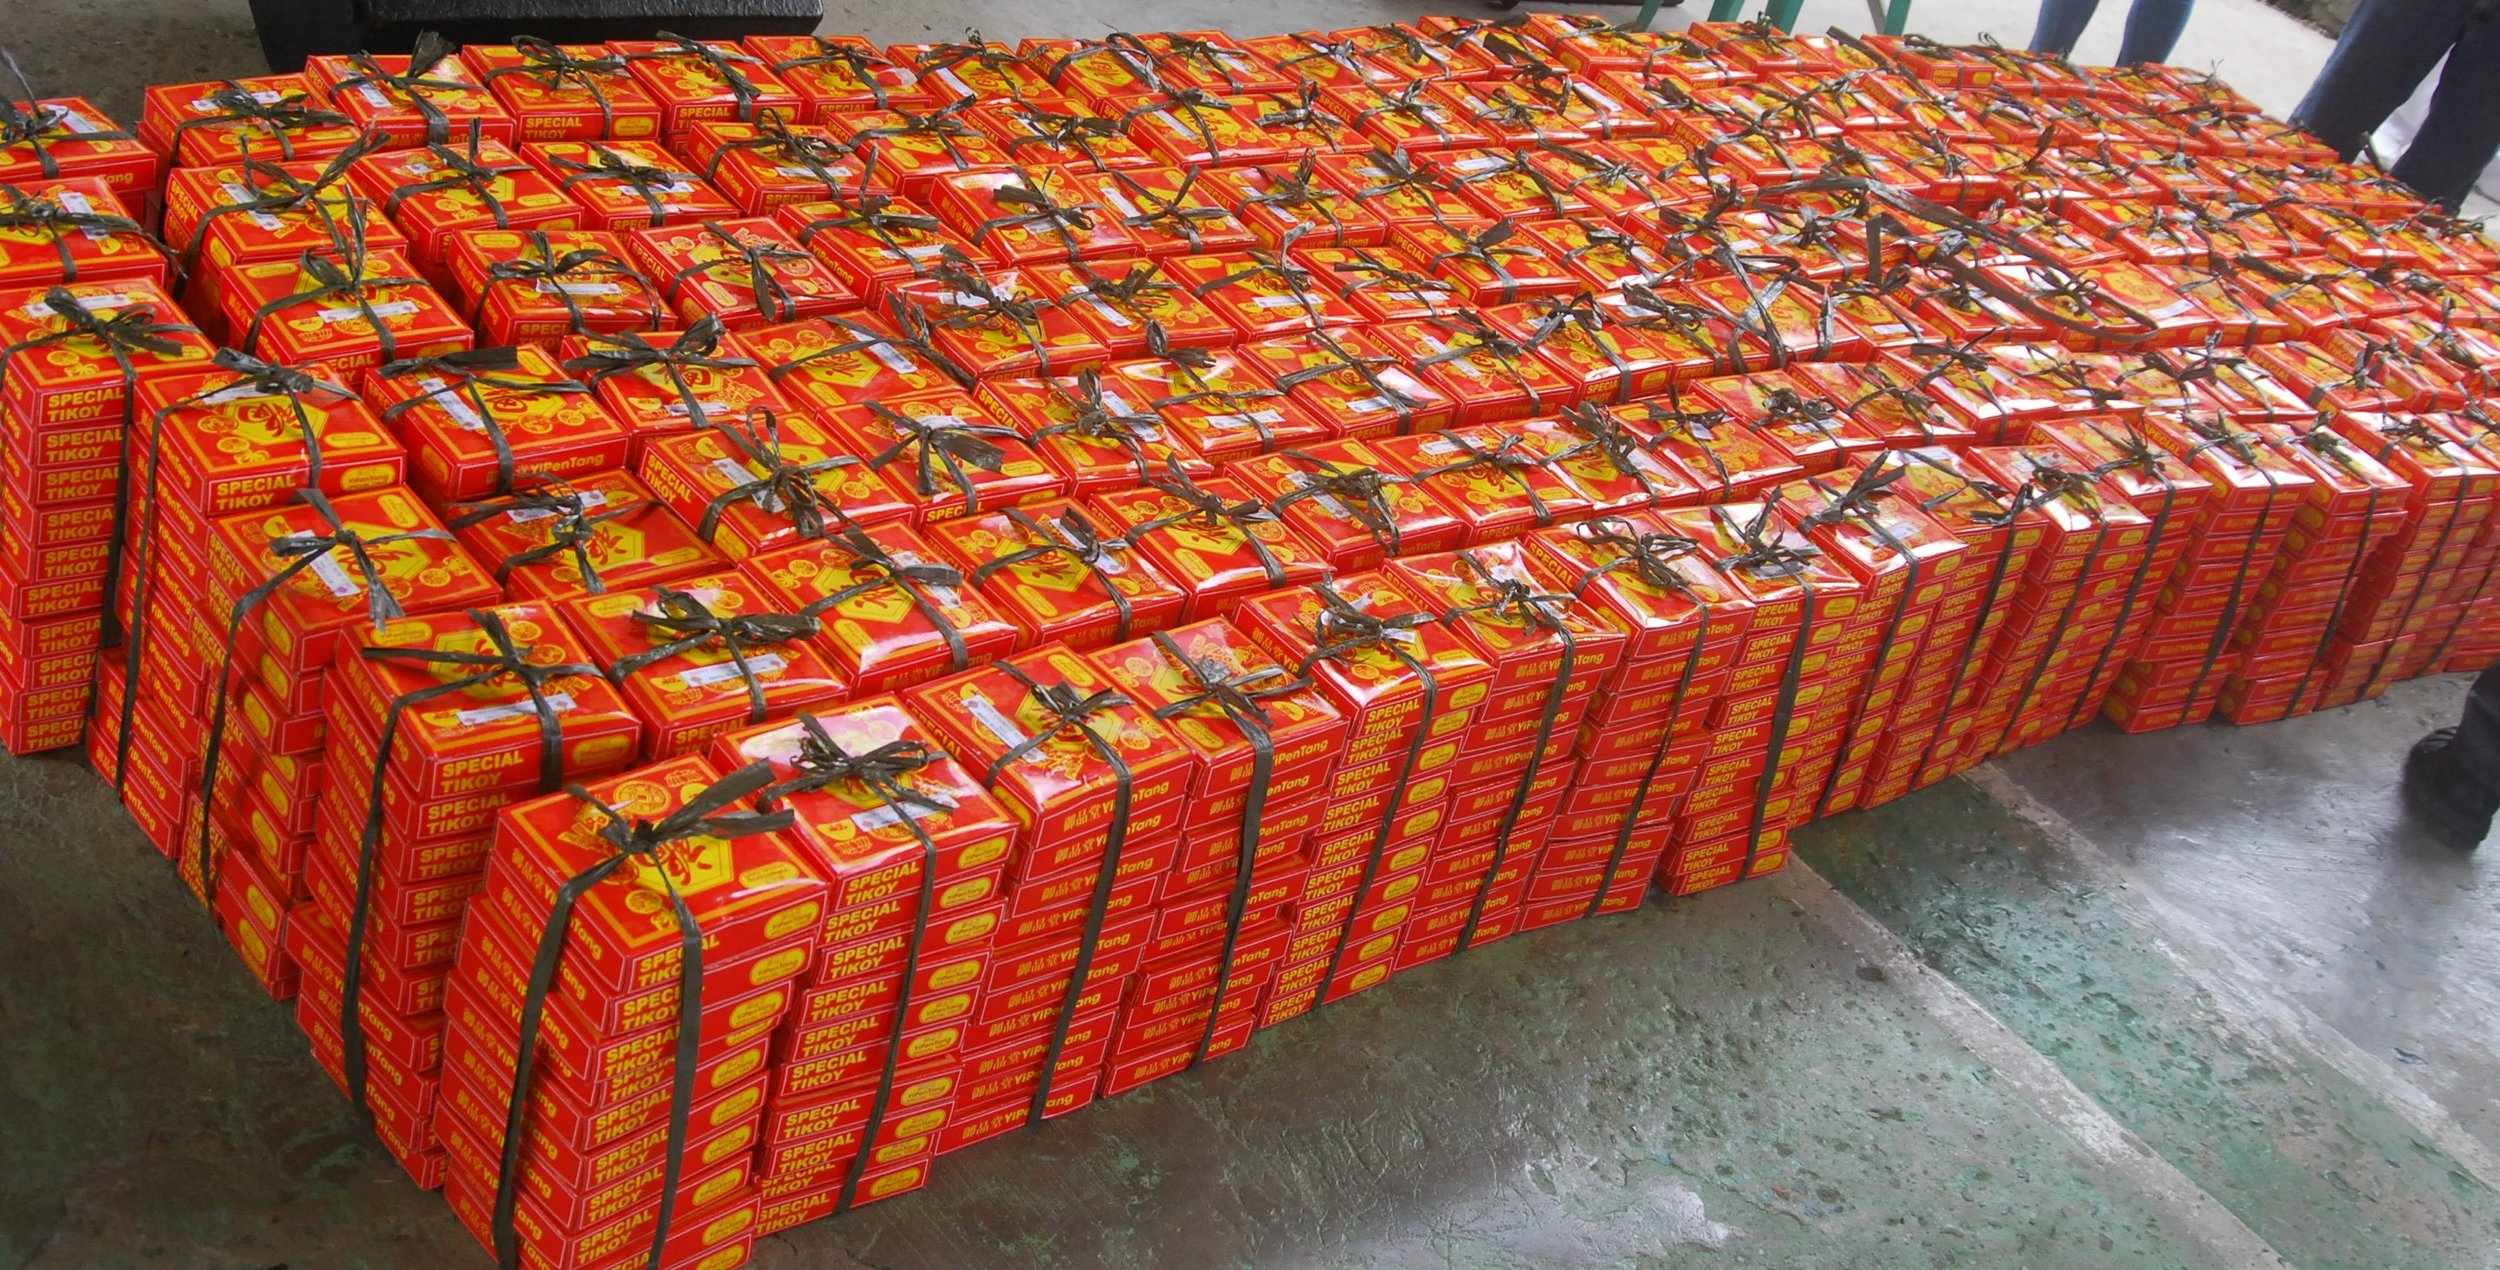 Some 10,000 pieces of tikoy were distributed to the residents of Camarin and Barracks in north Caloocan City